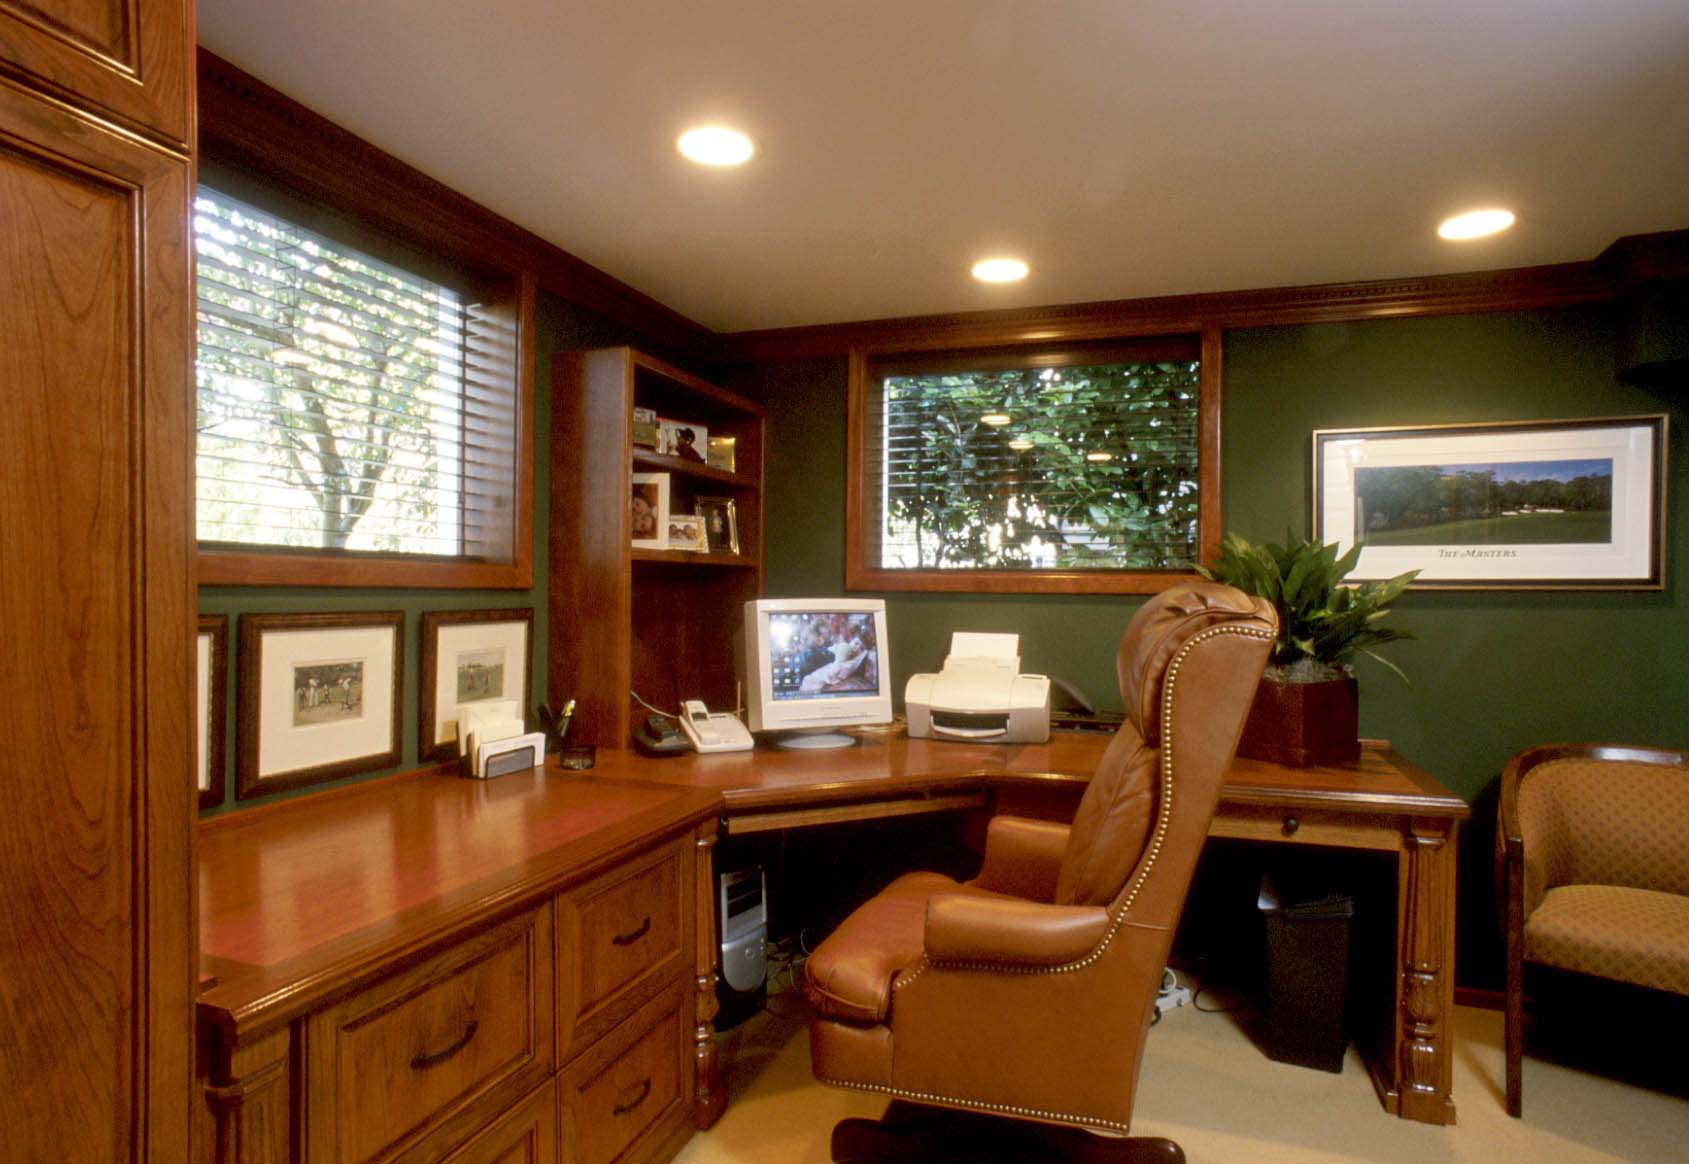 Custom Home Office Furniture lovely inspiration ideas custom office furniture creative decoration custom furniture dallas home office furniture cabinets frisco Home Office